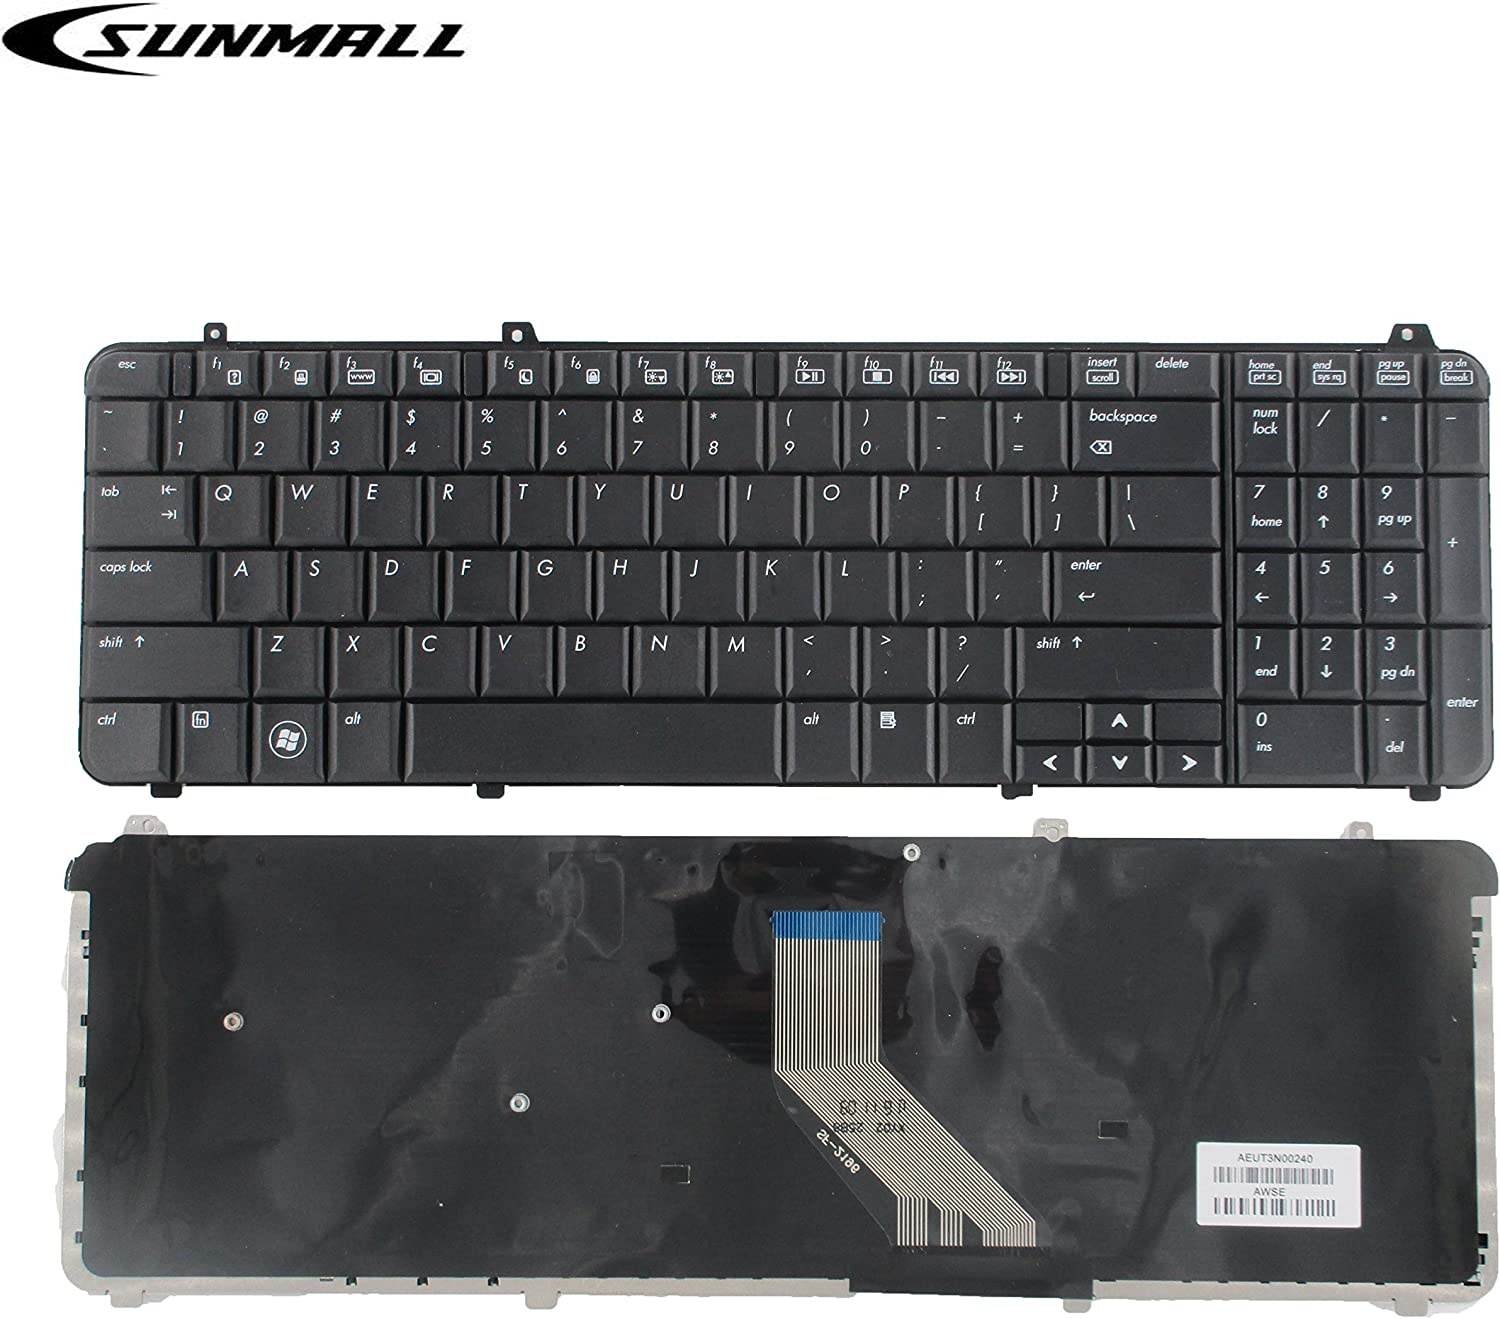 SUNMALL Keyboard Replacement Compatible with HP Pavilion dv6-1000 DV6-1100 dv6-1200 DV6-1300 DV6-2000 DV6-2100 DV6Z-1100 DV6T-1200 DV6T-2000 DV6Z-2000 Series Laptop Black US Layout